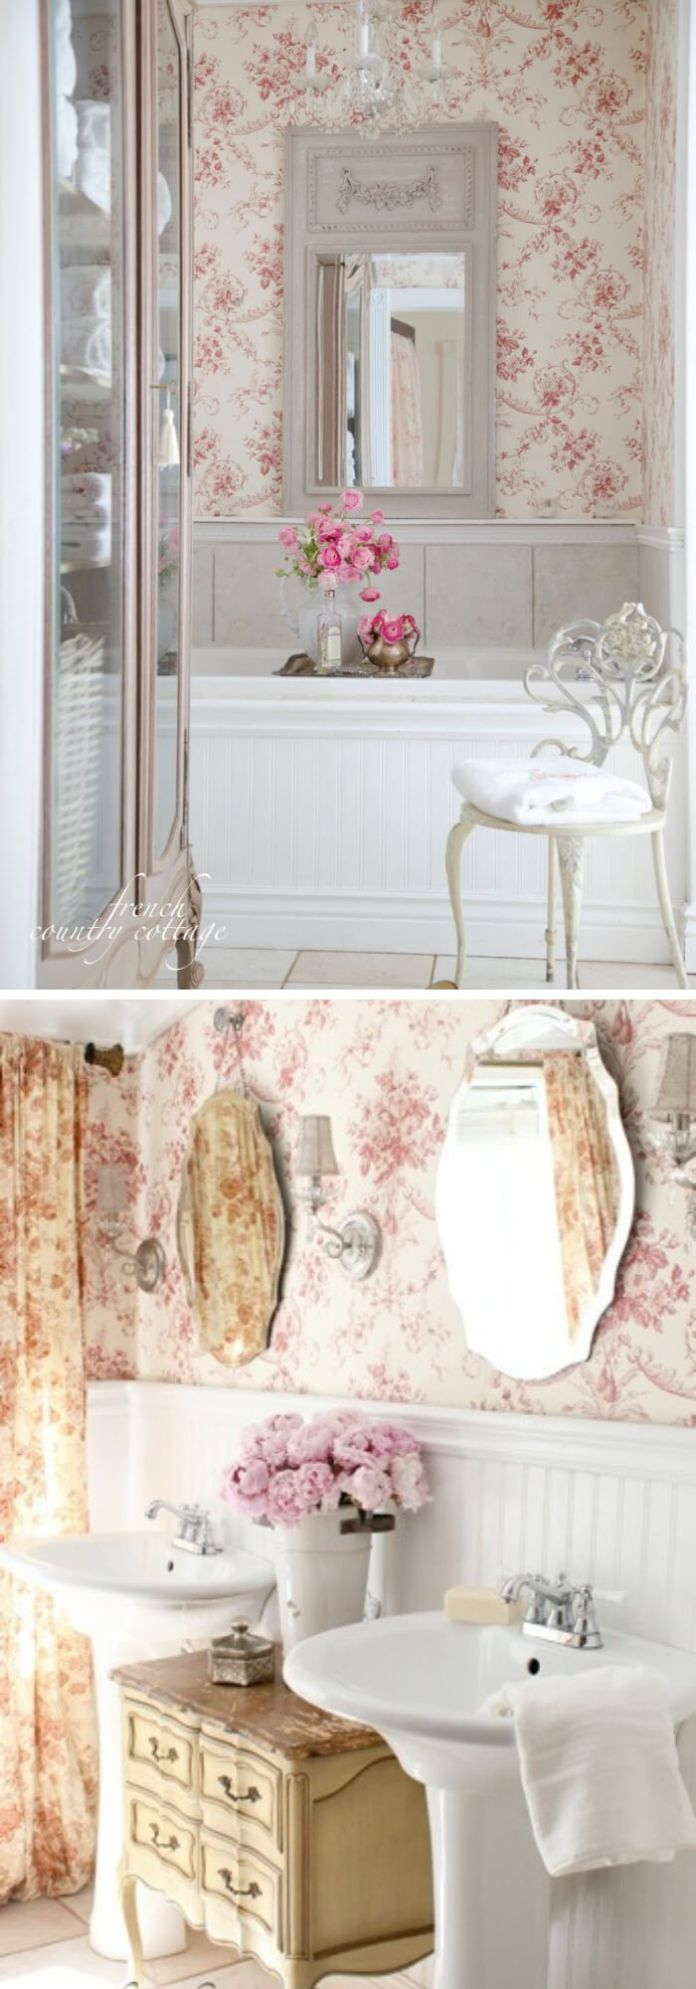 Charming Cottage Style Bathroom Ideas French Ornate Mirror